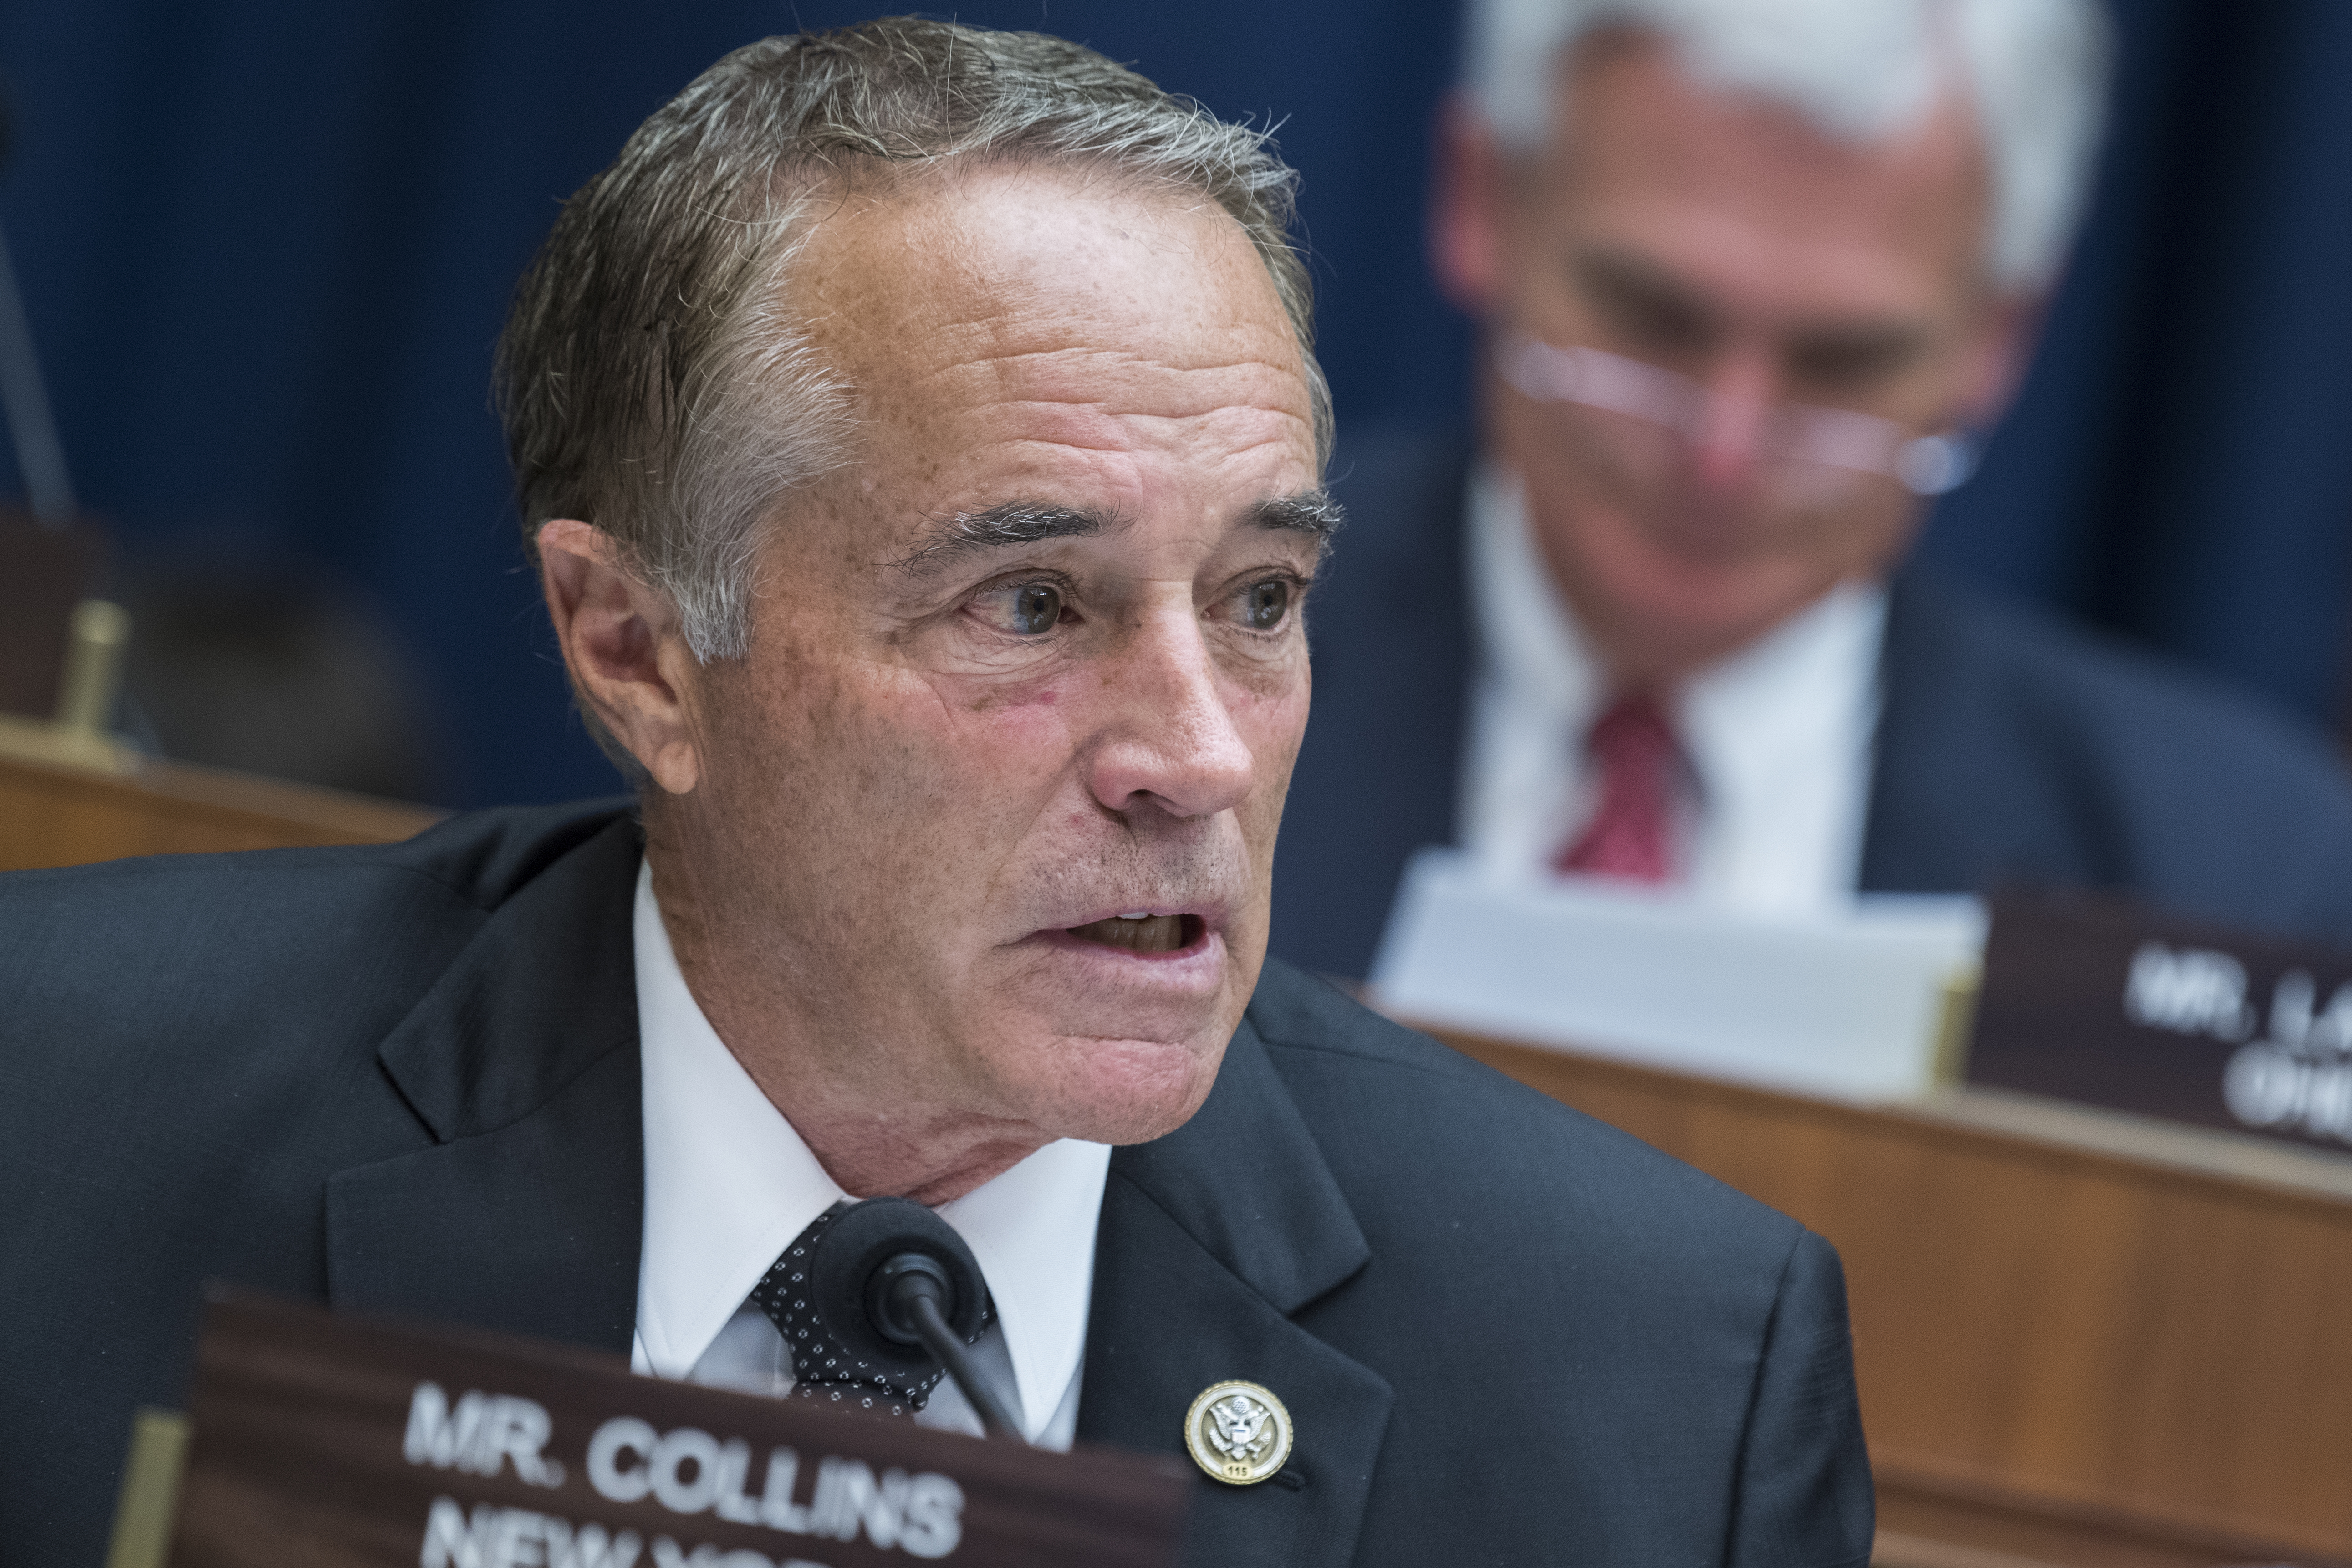 UNITED STATES - JUNE 13: Rep. Chris Collins, R-N.Y., attends a House Energy and Commerce Communications and Technology Subcommittee markup in Rayburn Building on June 13, 2018. (Photo By Tom Williams/CQ Roll Call)